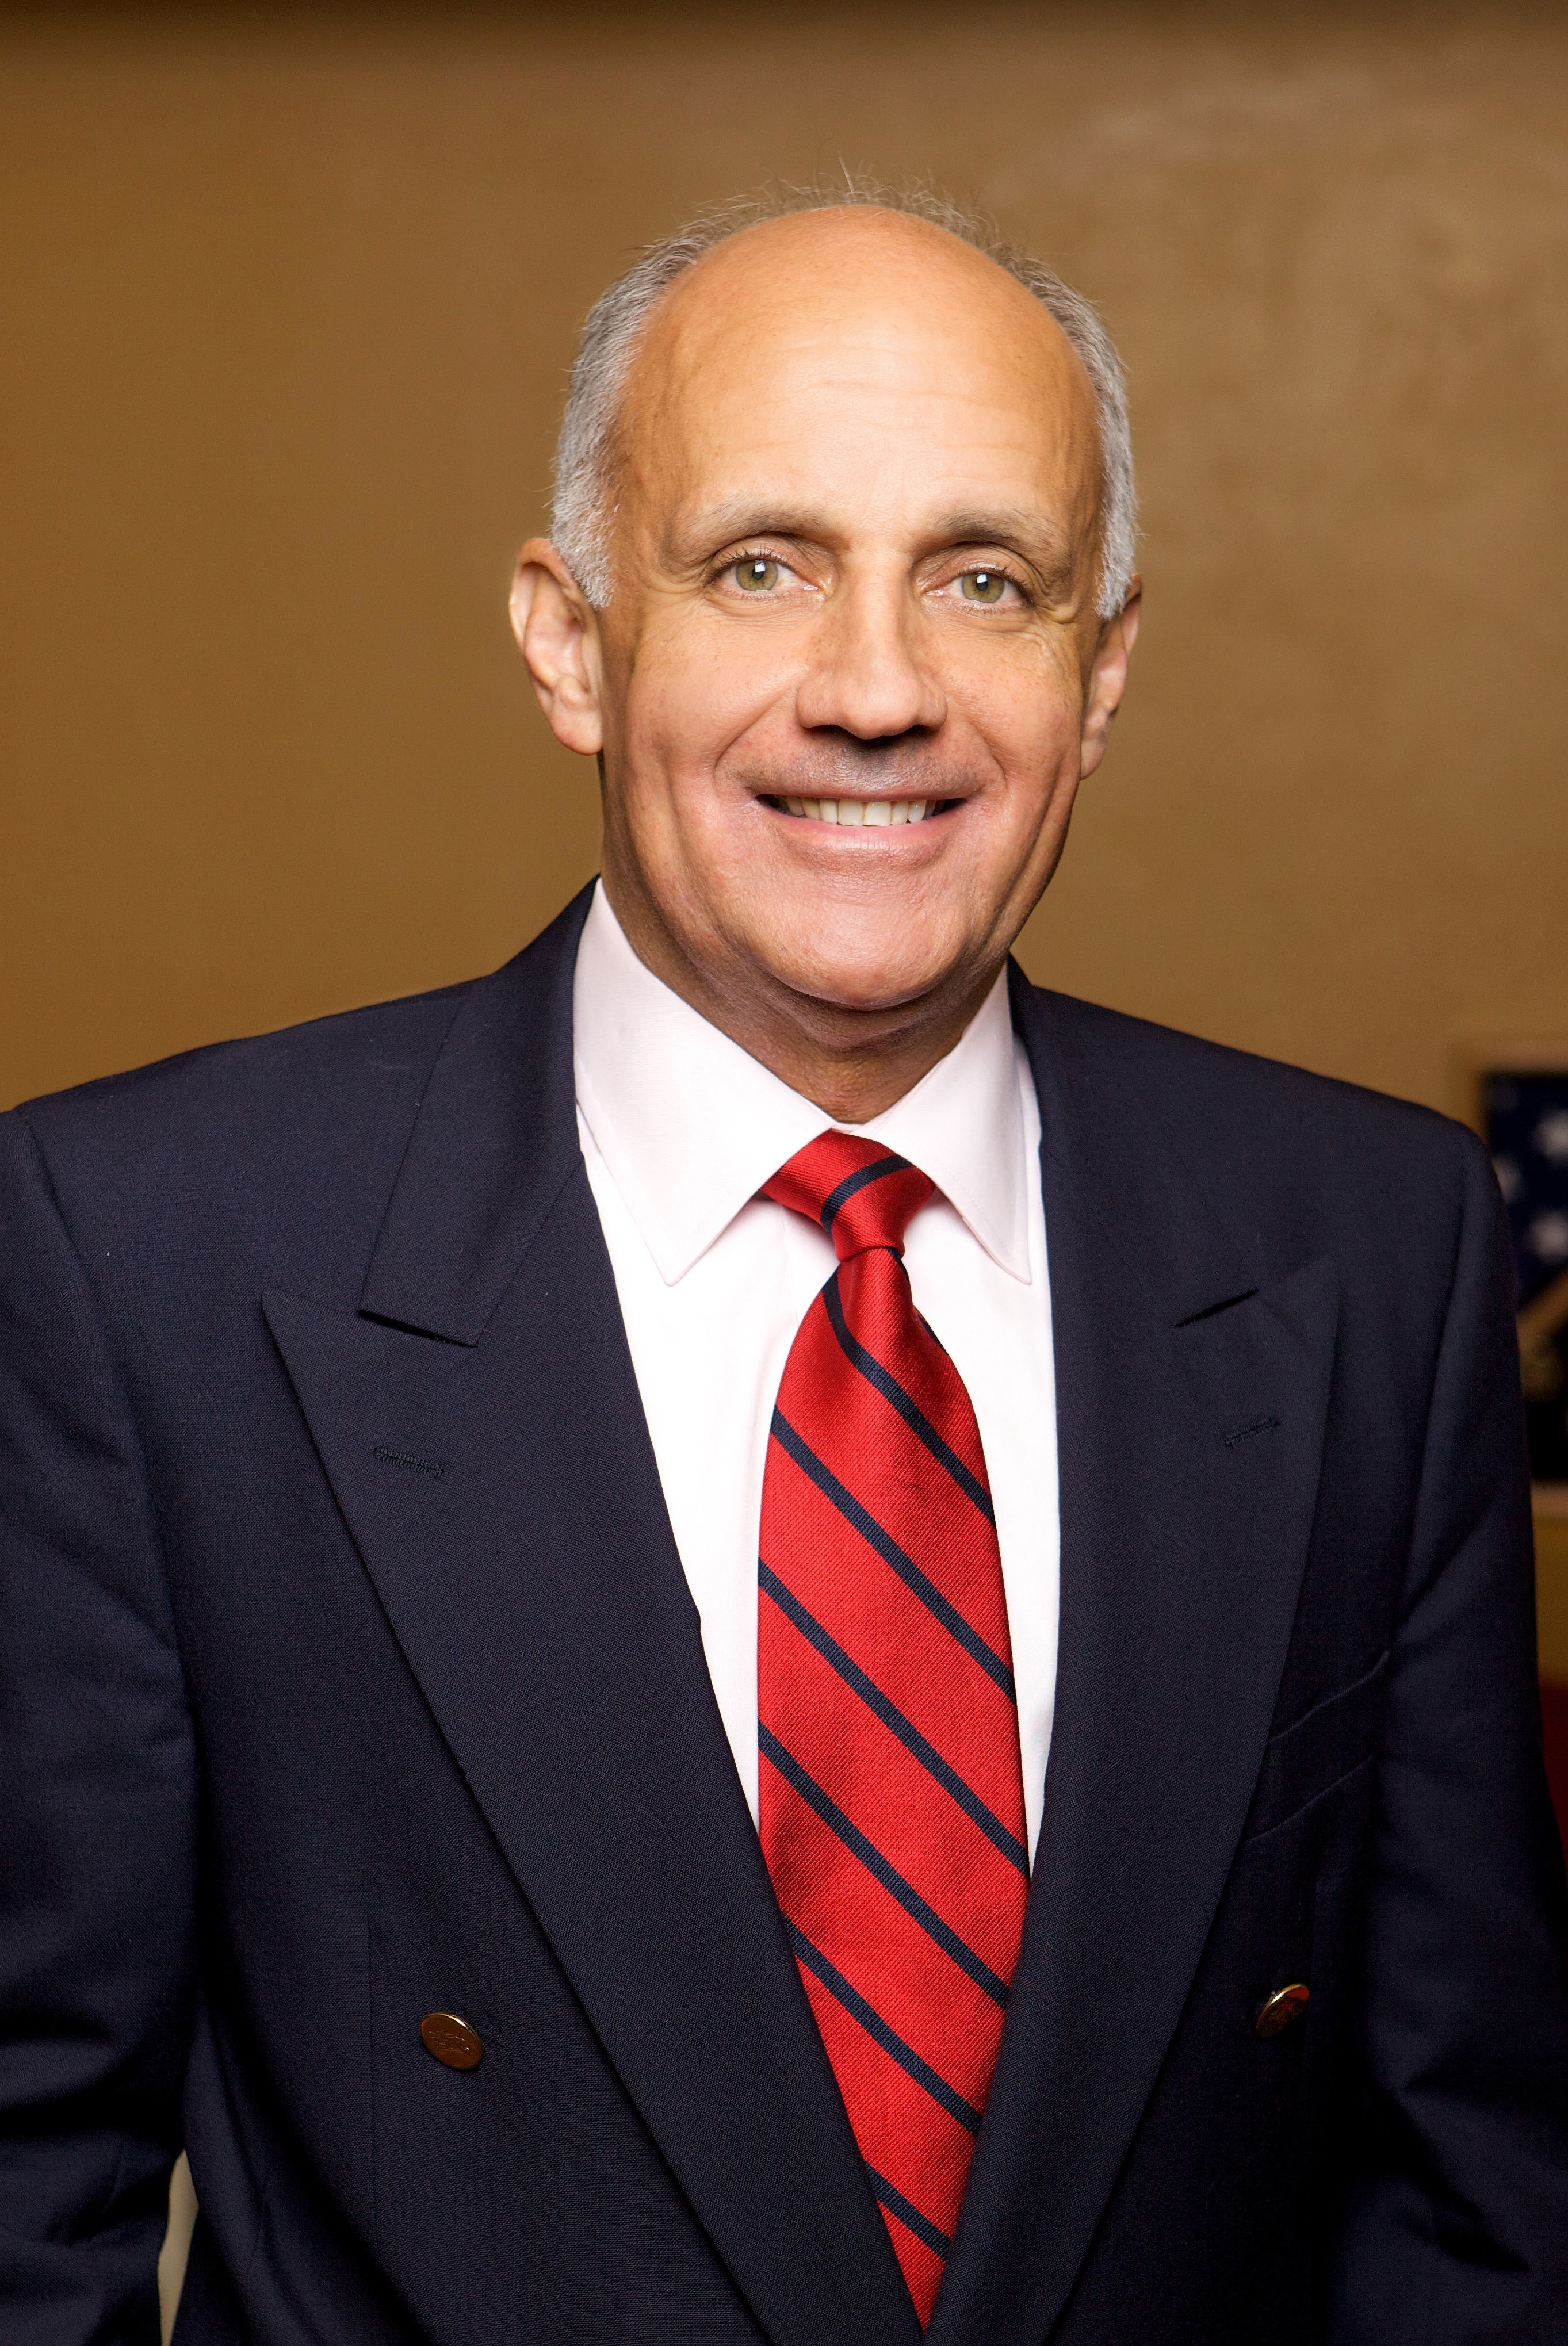 Herbalife Announces Appointment Of Dr Richard H Carmona 17th Surgeon General Of The United States 2002 2006 To Board Of Directors Herbalife Surgeon United States